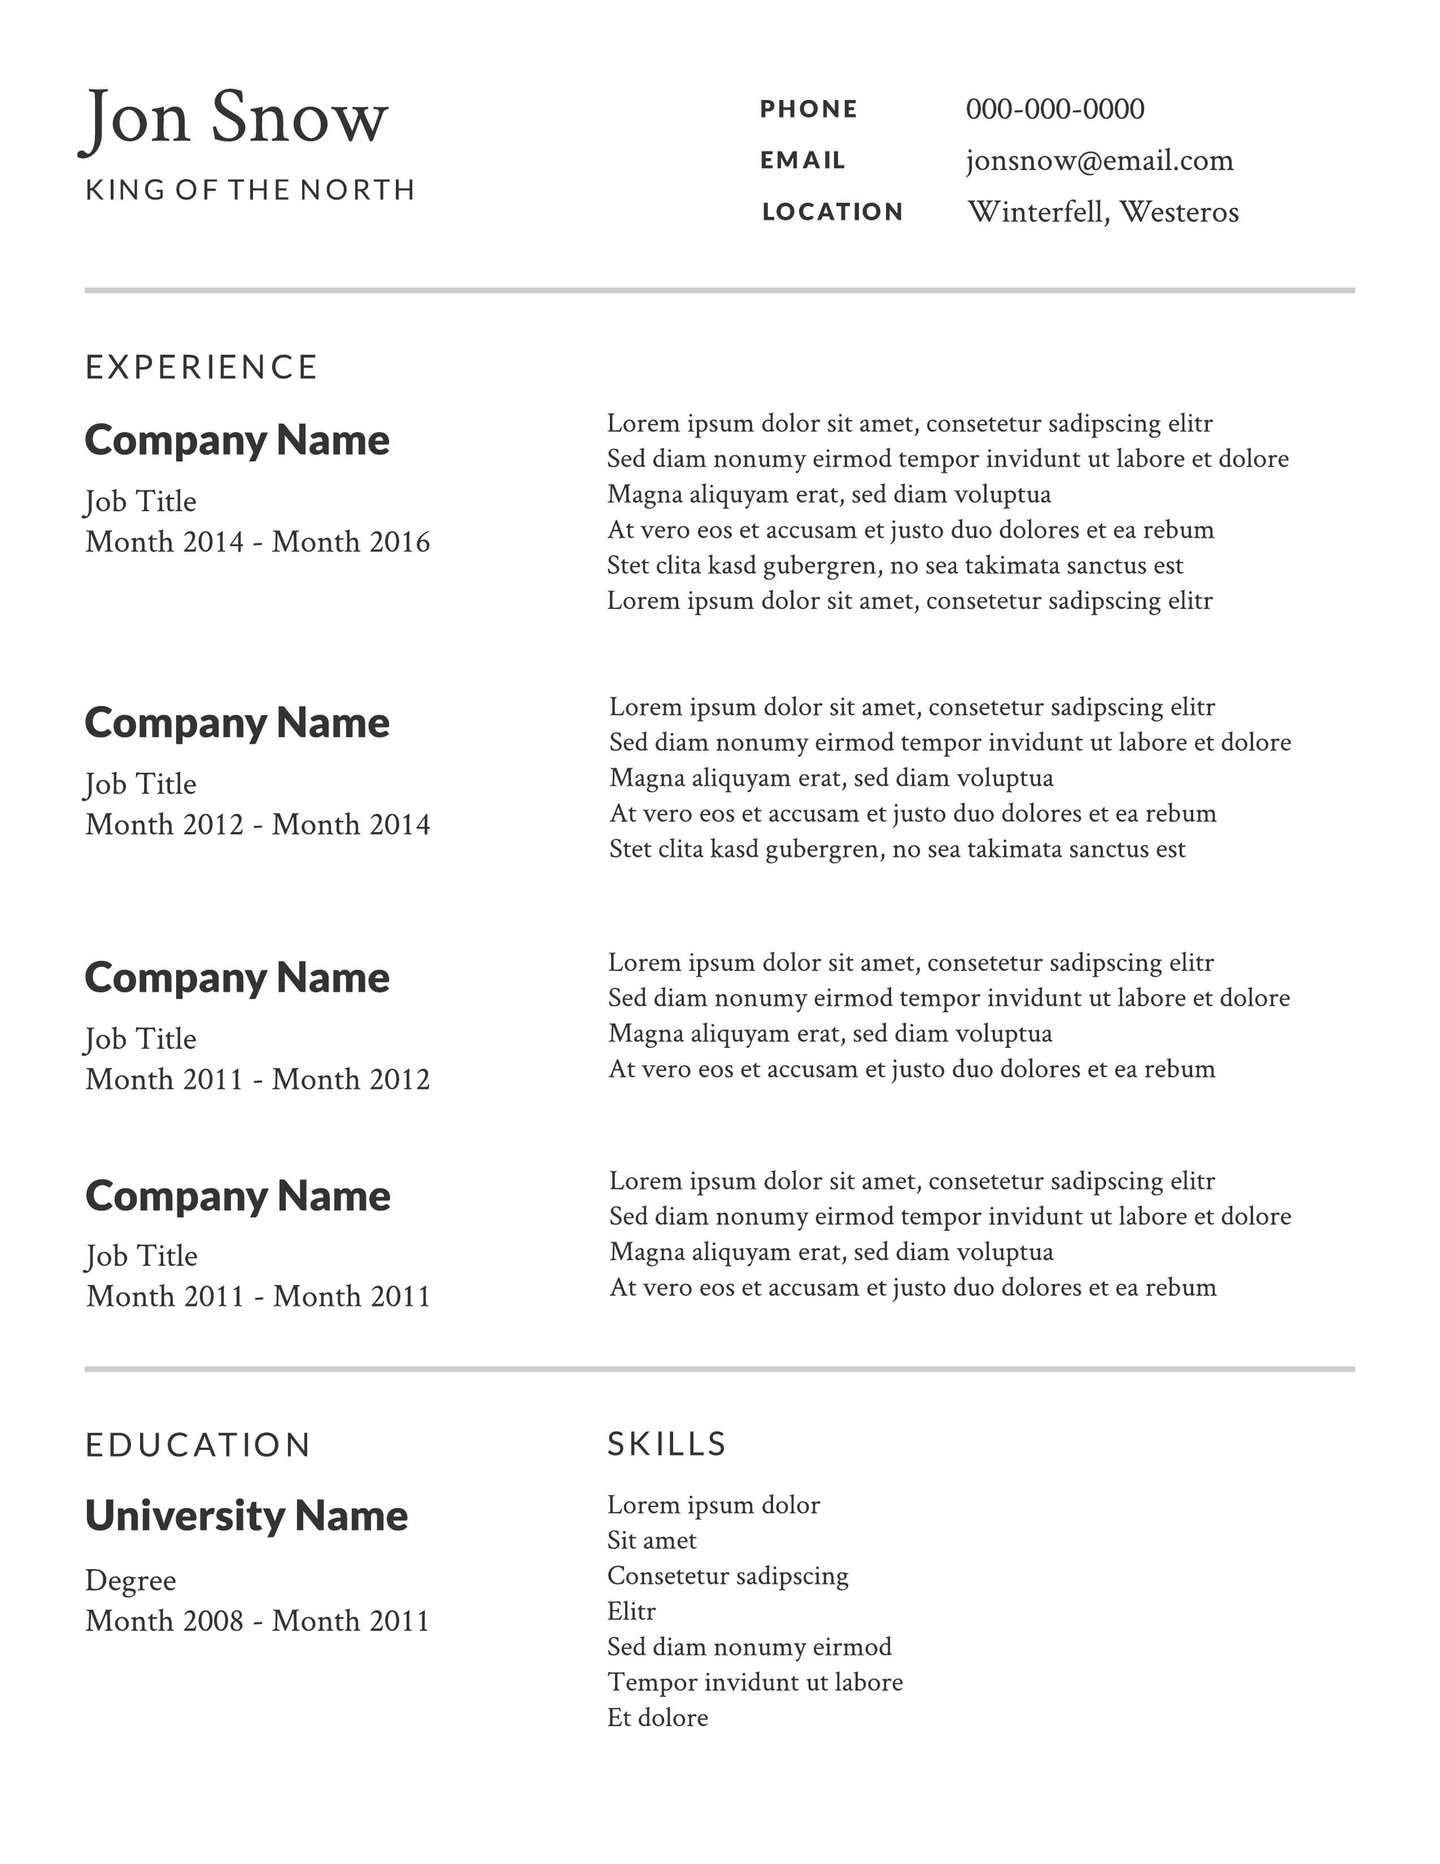 Free Professional Resume Templates (Downloadable) | Lucidpress